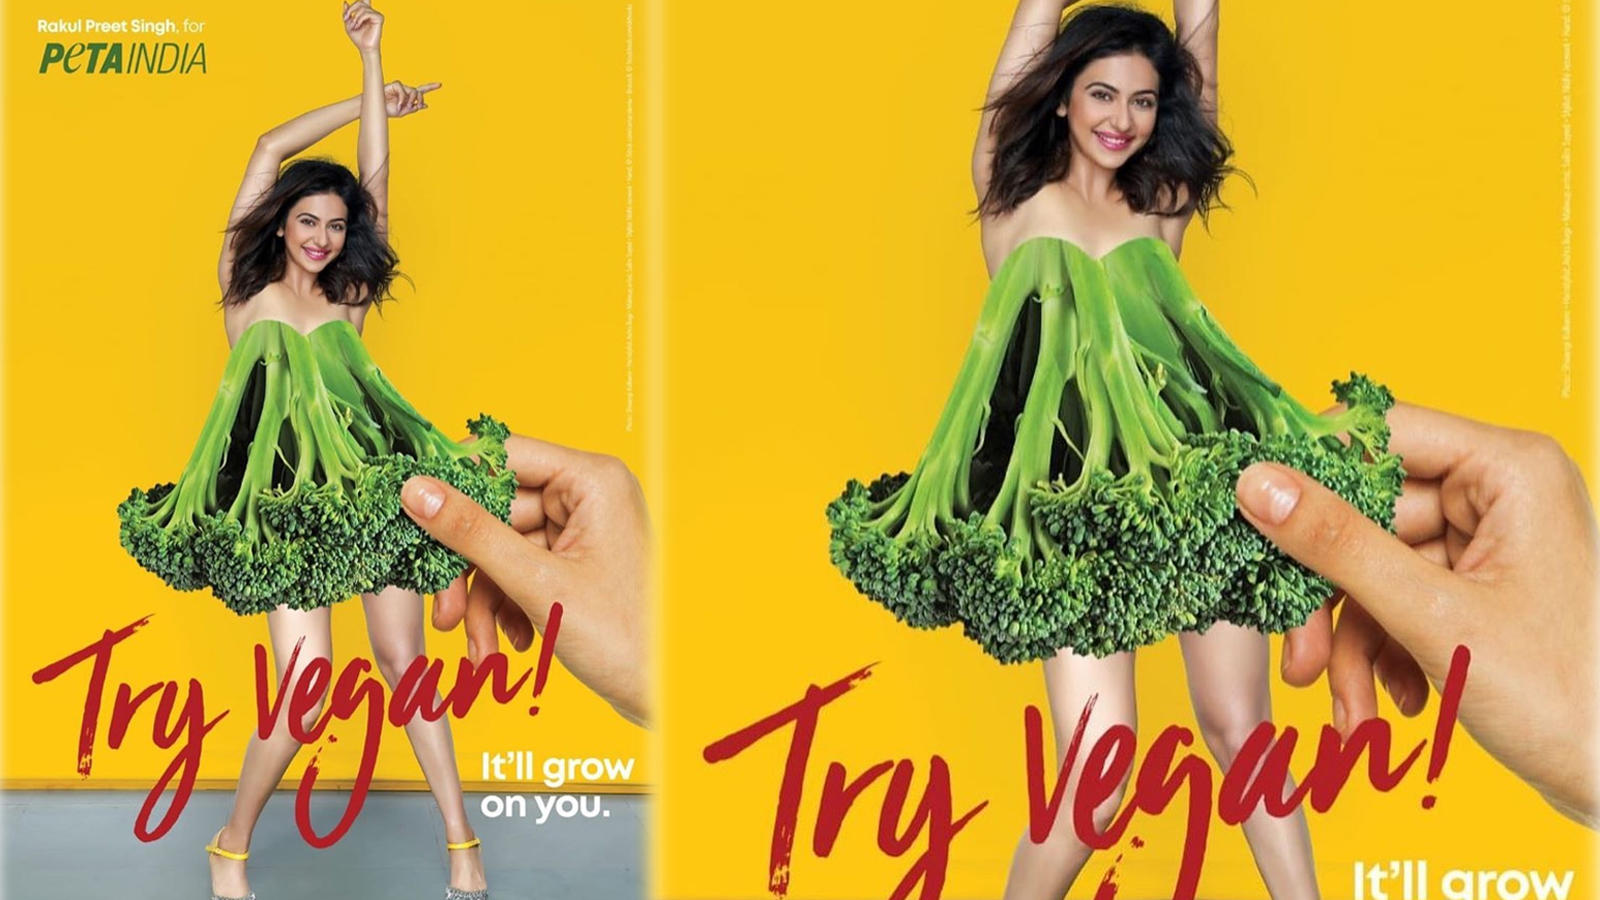 world-environment-day-rakul-preet-singh-goes-all-glam-for-peta-india-campaign-latest-pic-breaks-the-internet